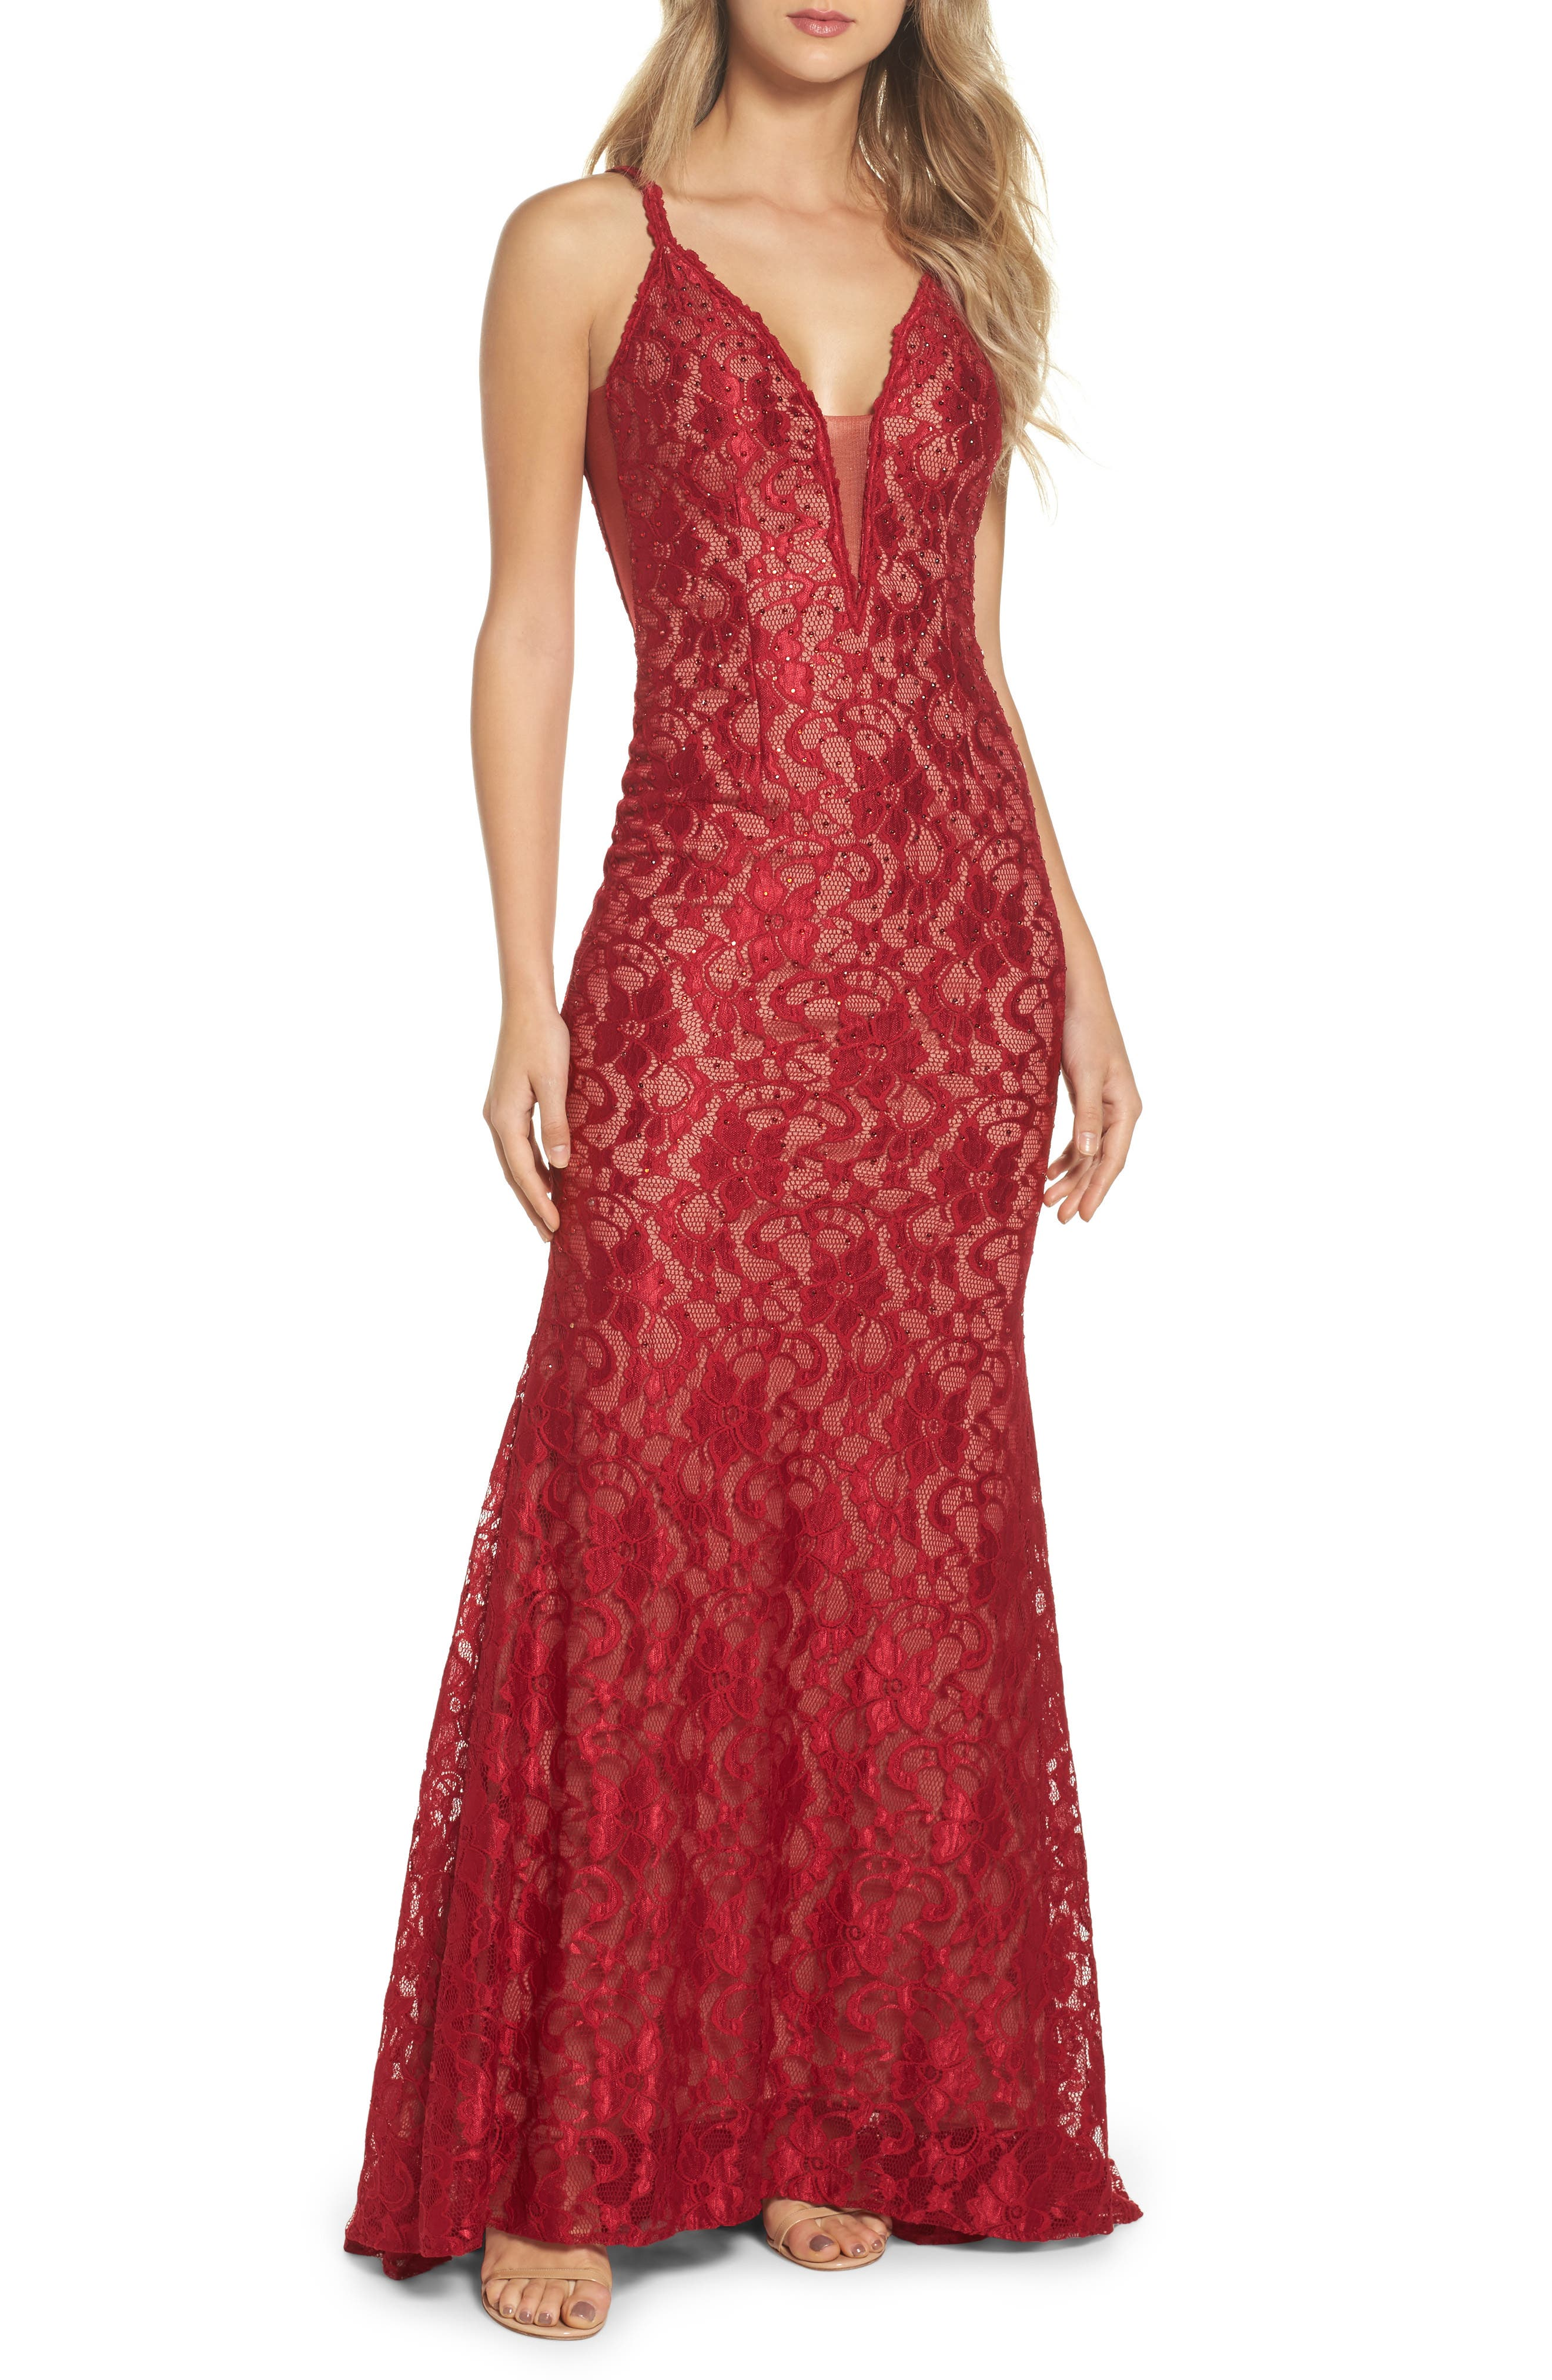 Plunging Beaded Lace Mermaid Gown,                             Main thumbnail 1, color,                             643